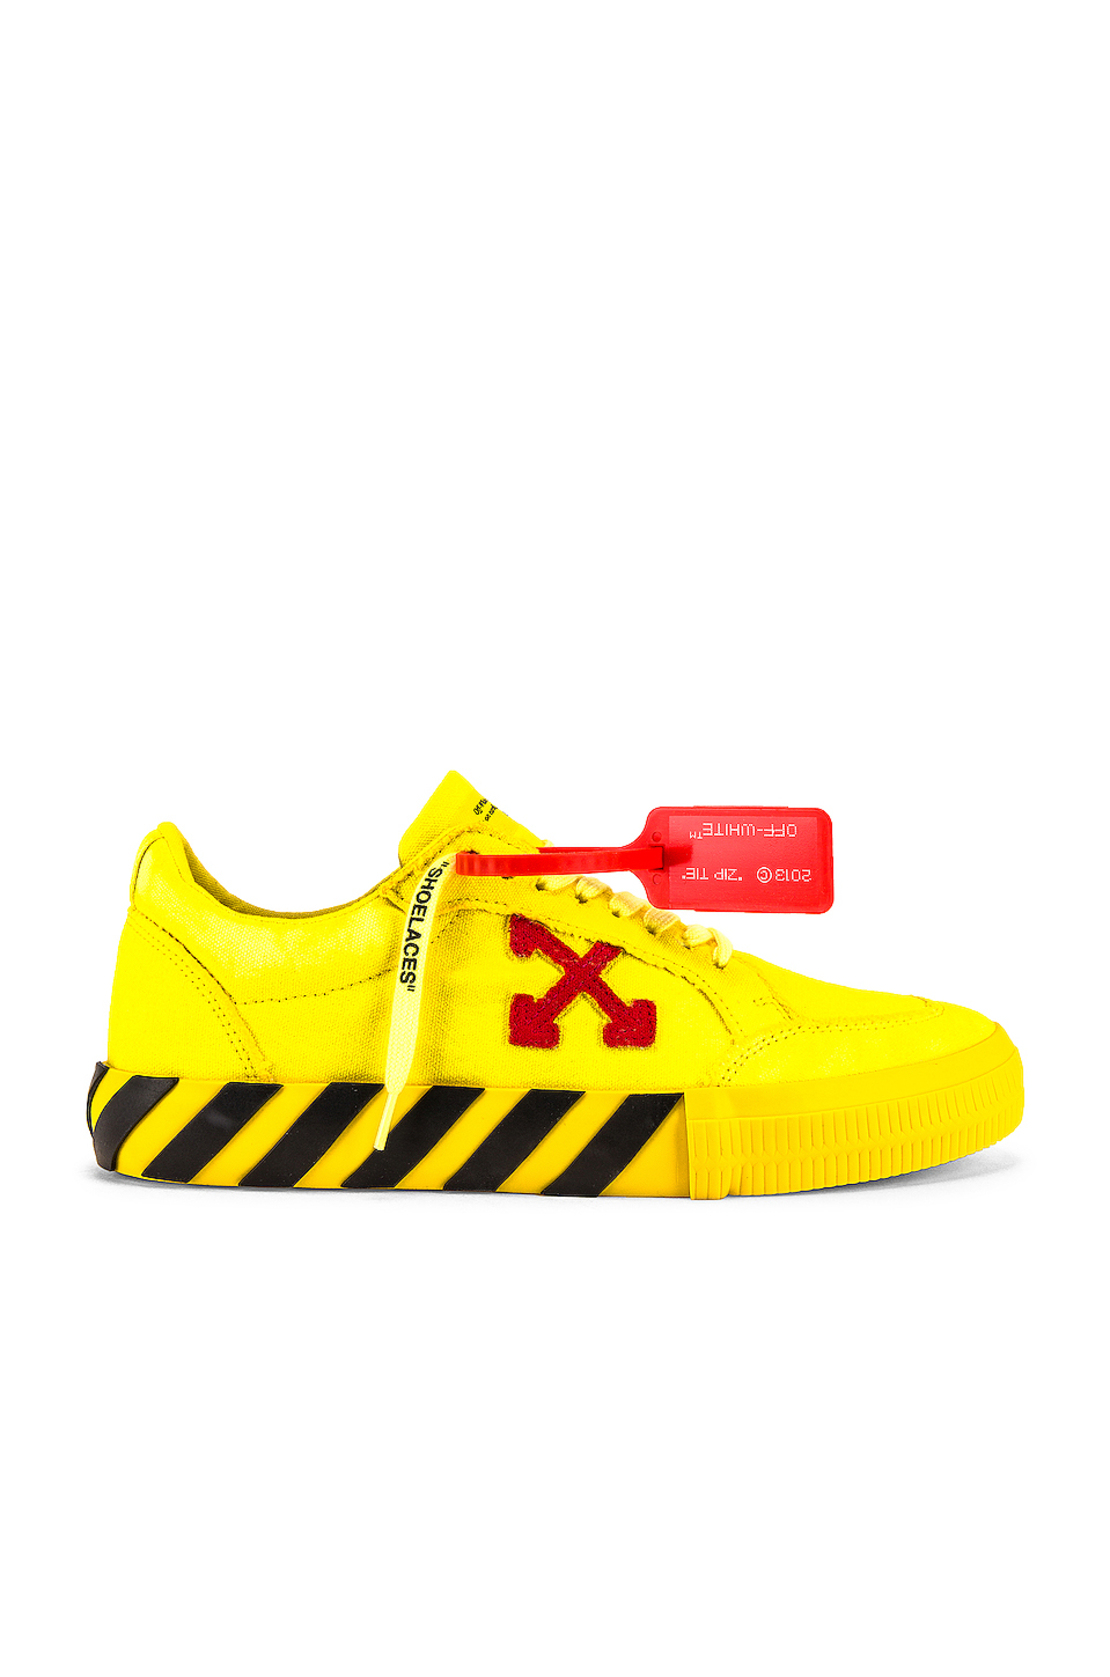 OFF-WHITE -LOW VULCANIZED SNEAKERS